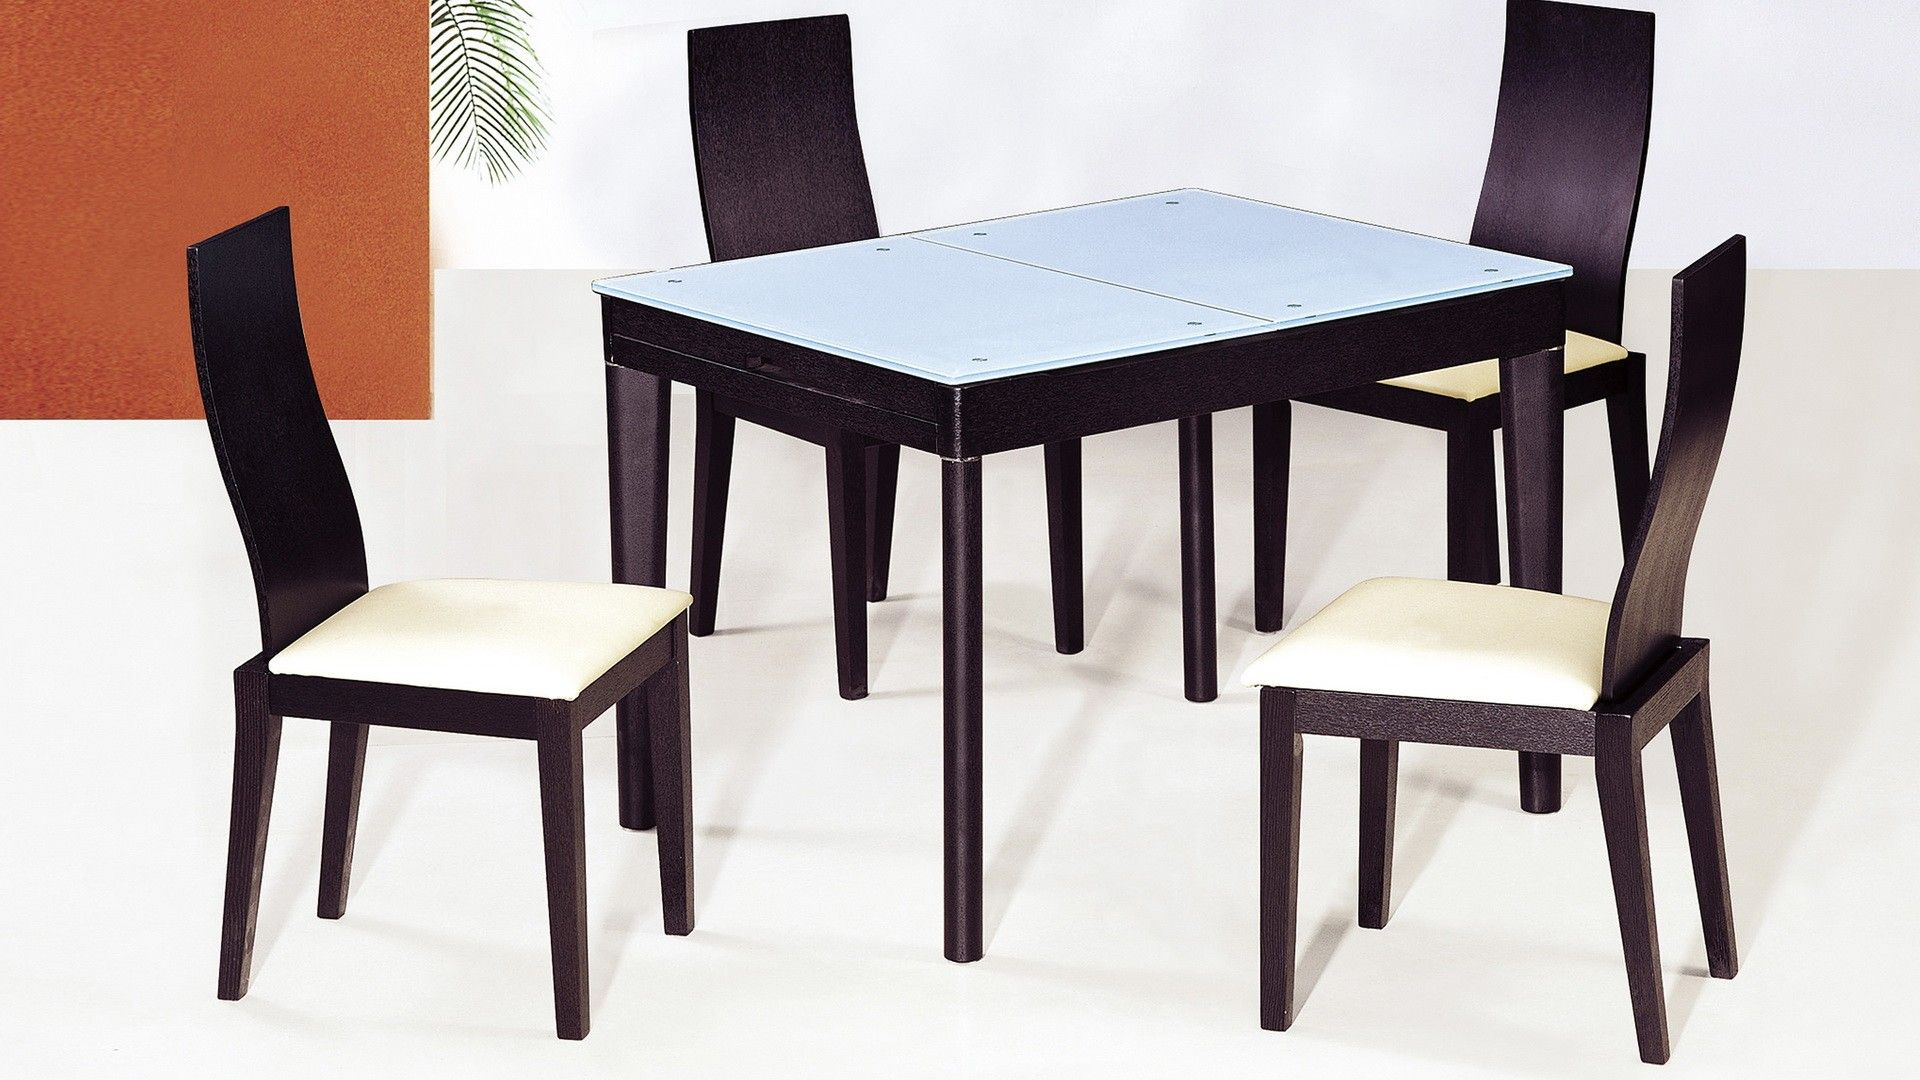 "AtHome DT6016+ DC3041C Diningroom Set - This DT6016 EXTEND-ABLE dining room table is a simple and functional design, perfect match for a small modern dining place. This DT6016 dining room table has an extend-able wooden body and glass top with a unique and functional combination. Extension to 71''. Also available in shiny white. Size : Dining Table : 42"" / 71"" x 32"" x 30"" Chair : L19'' X W18.5'' X H 37.5''"